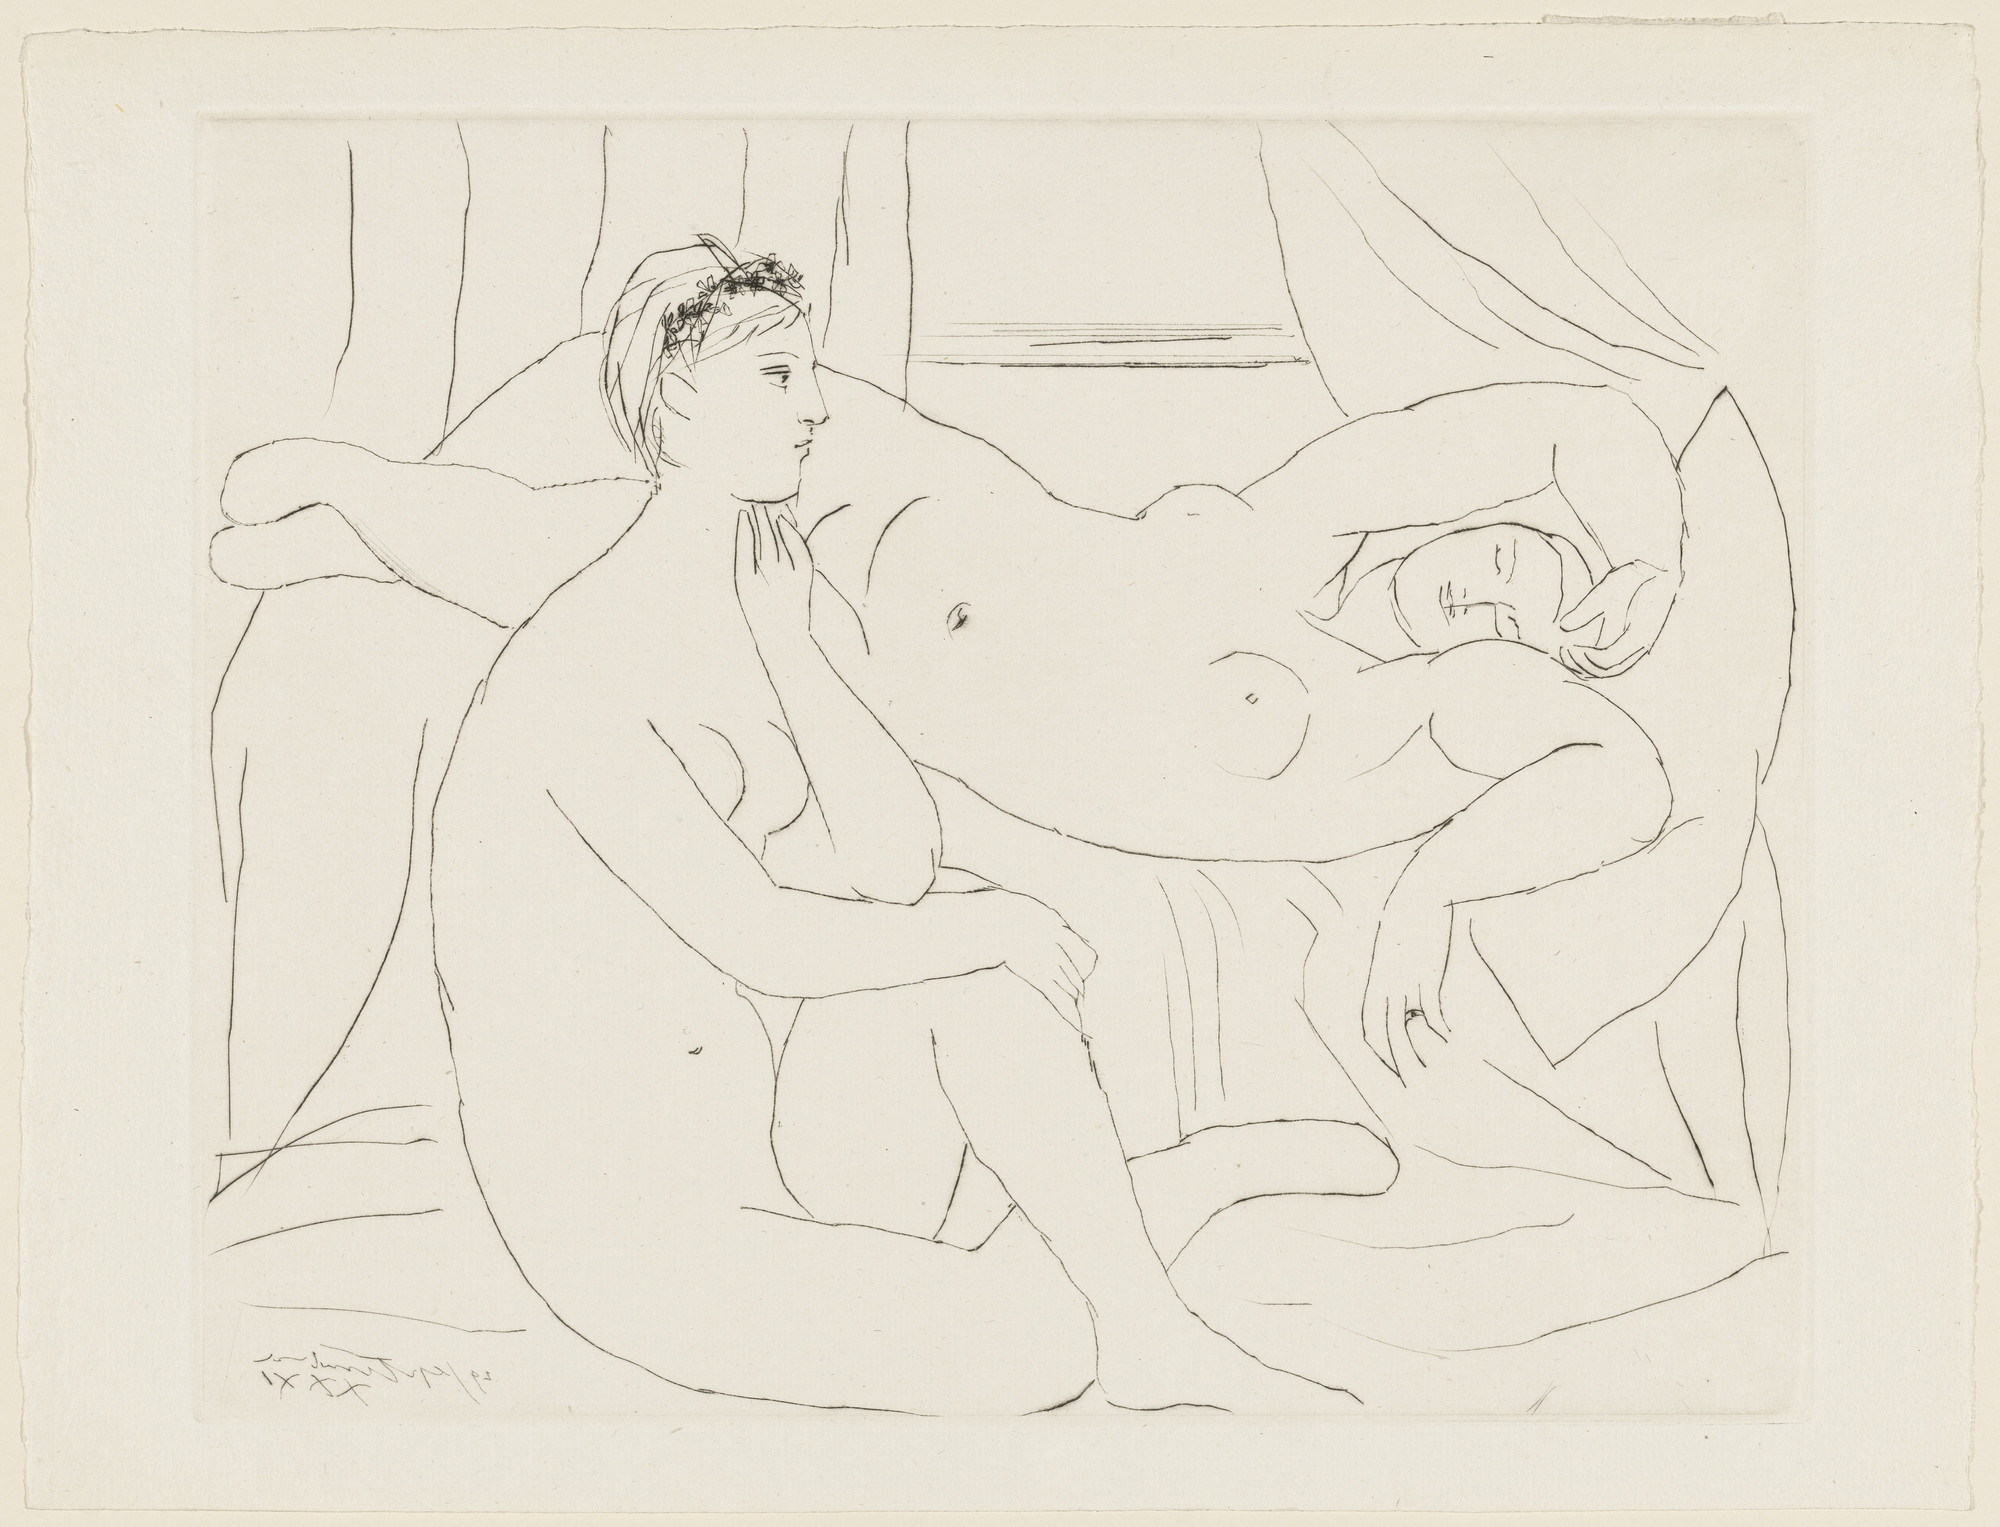 Pablo Picasso. Two Women at Rest (Deux femmes se reposant) from the Vollard Suite (Suite Vollard). 1931, published 1939